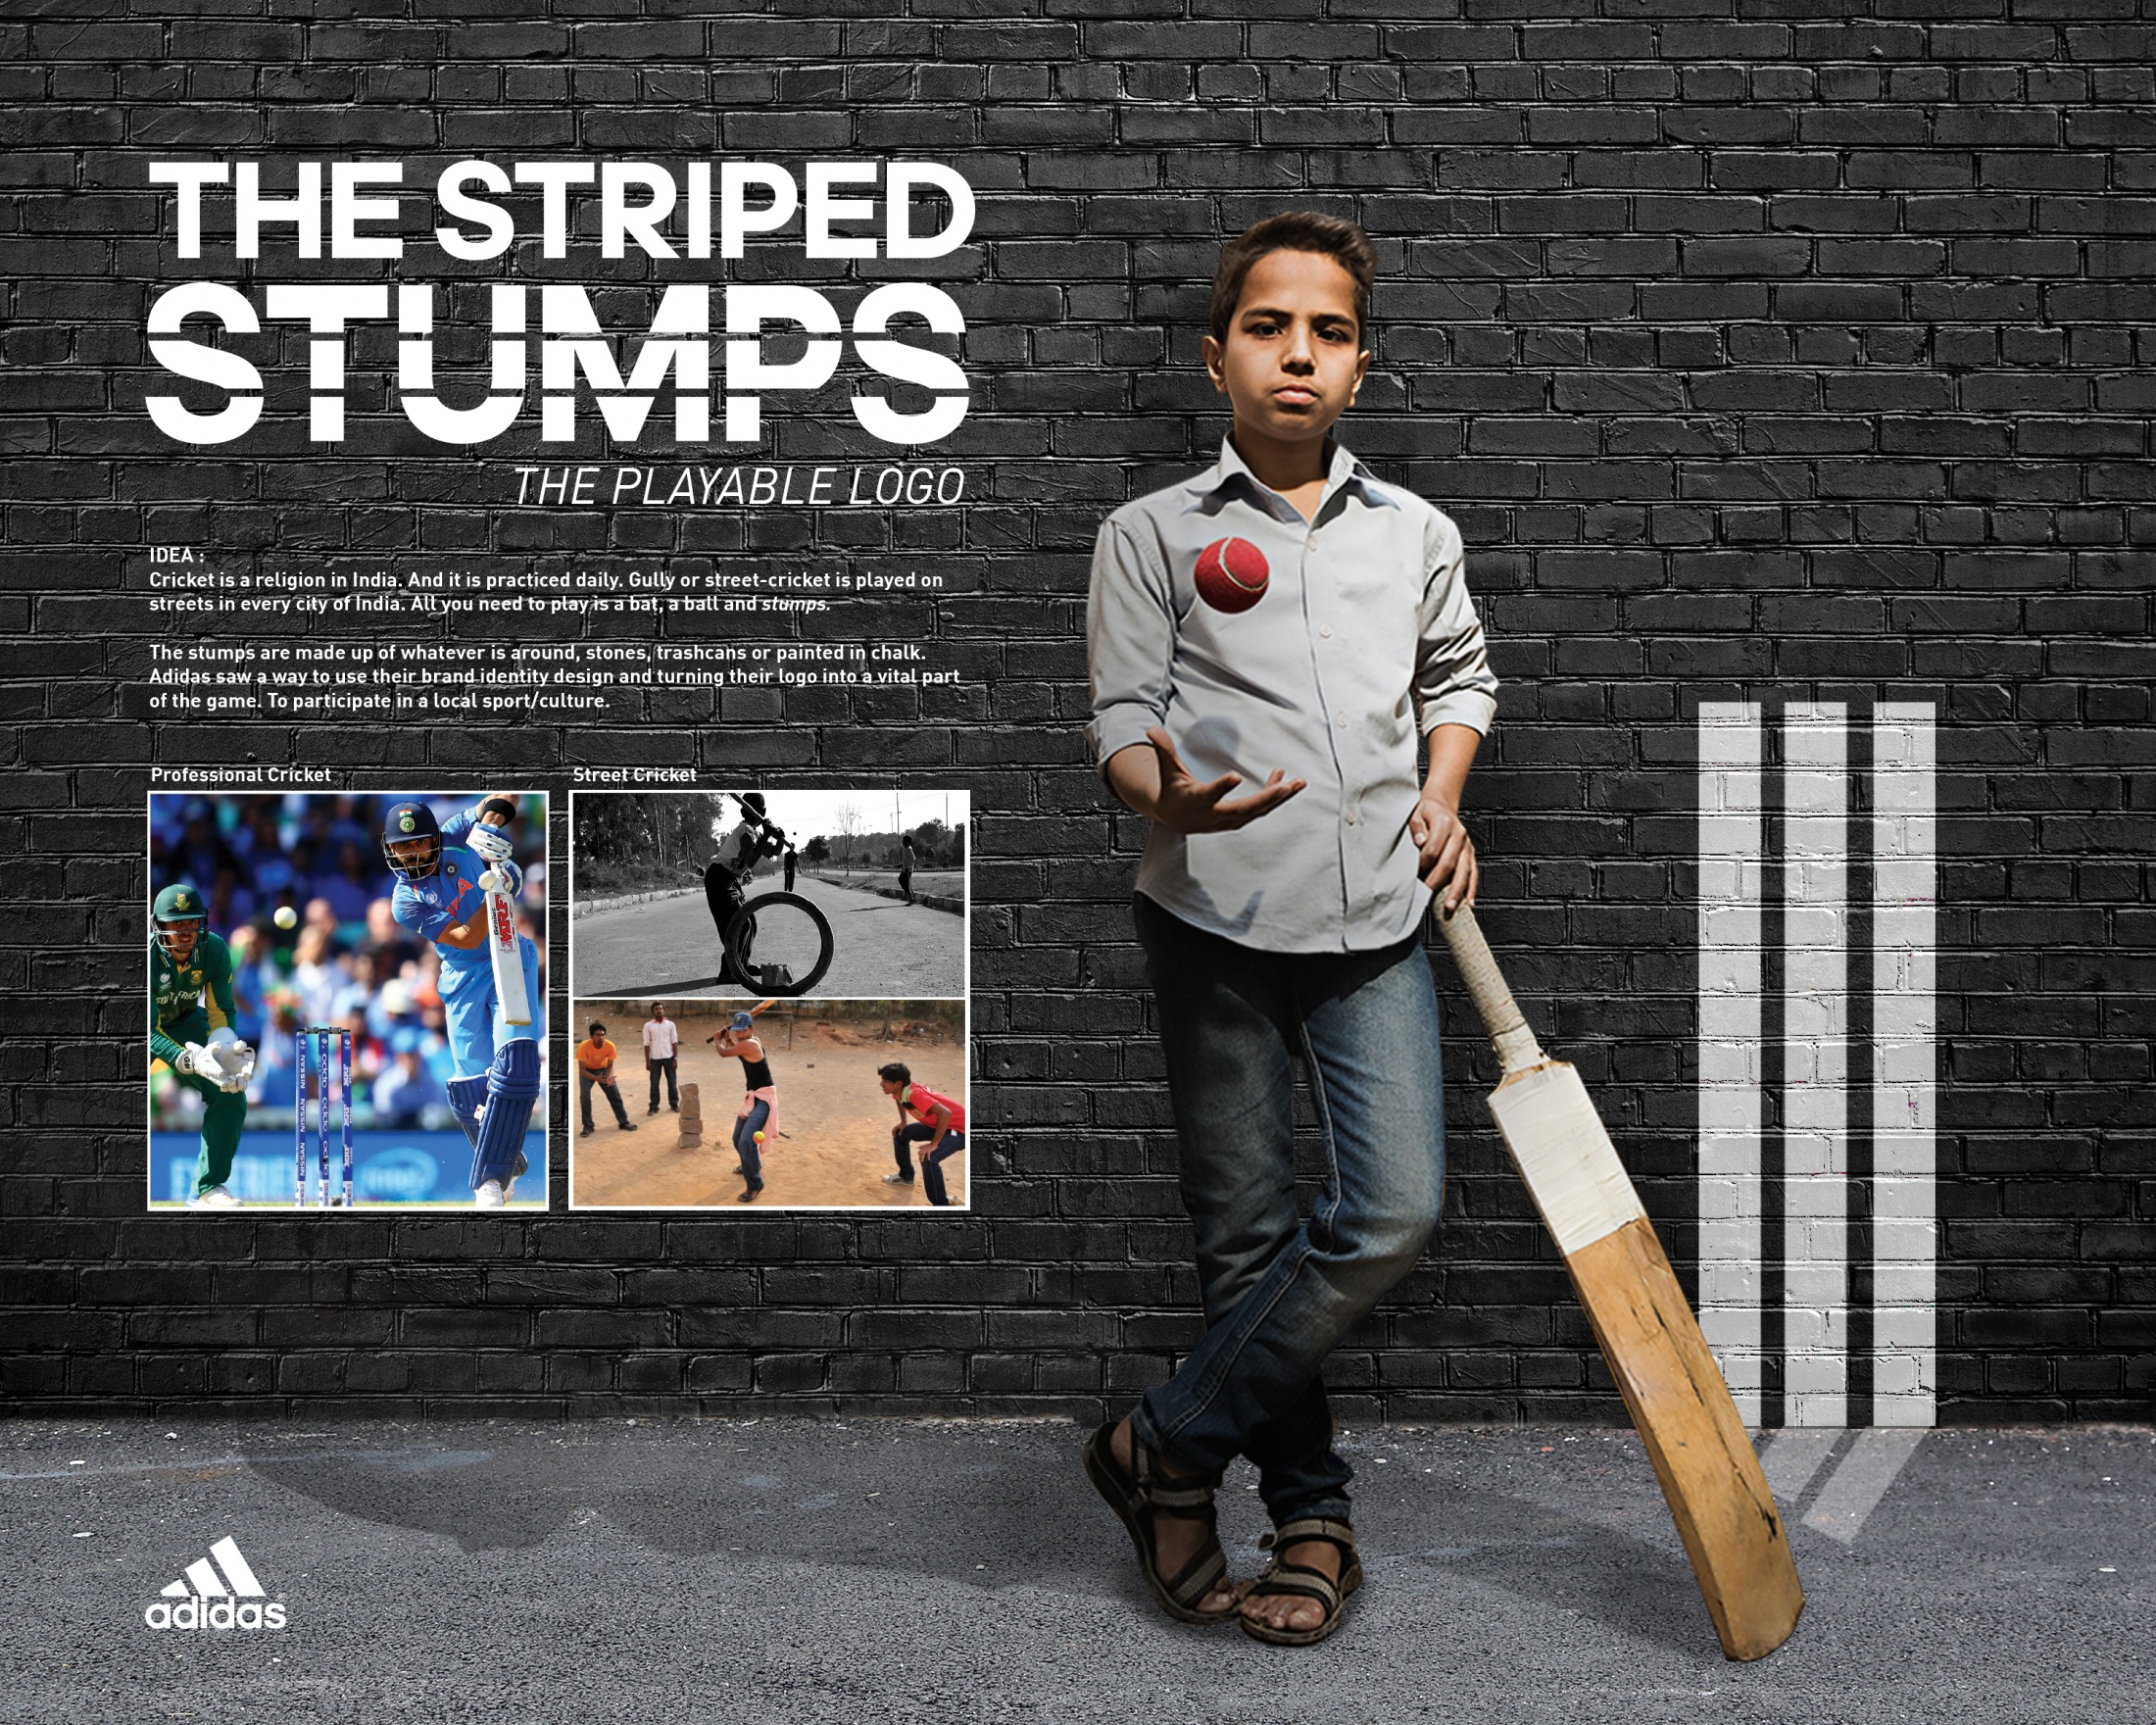 Image Media for The Striped Stumps